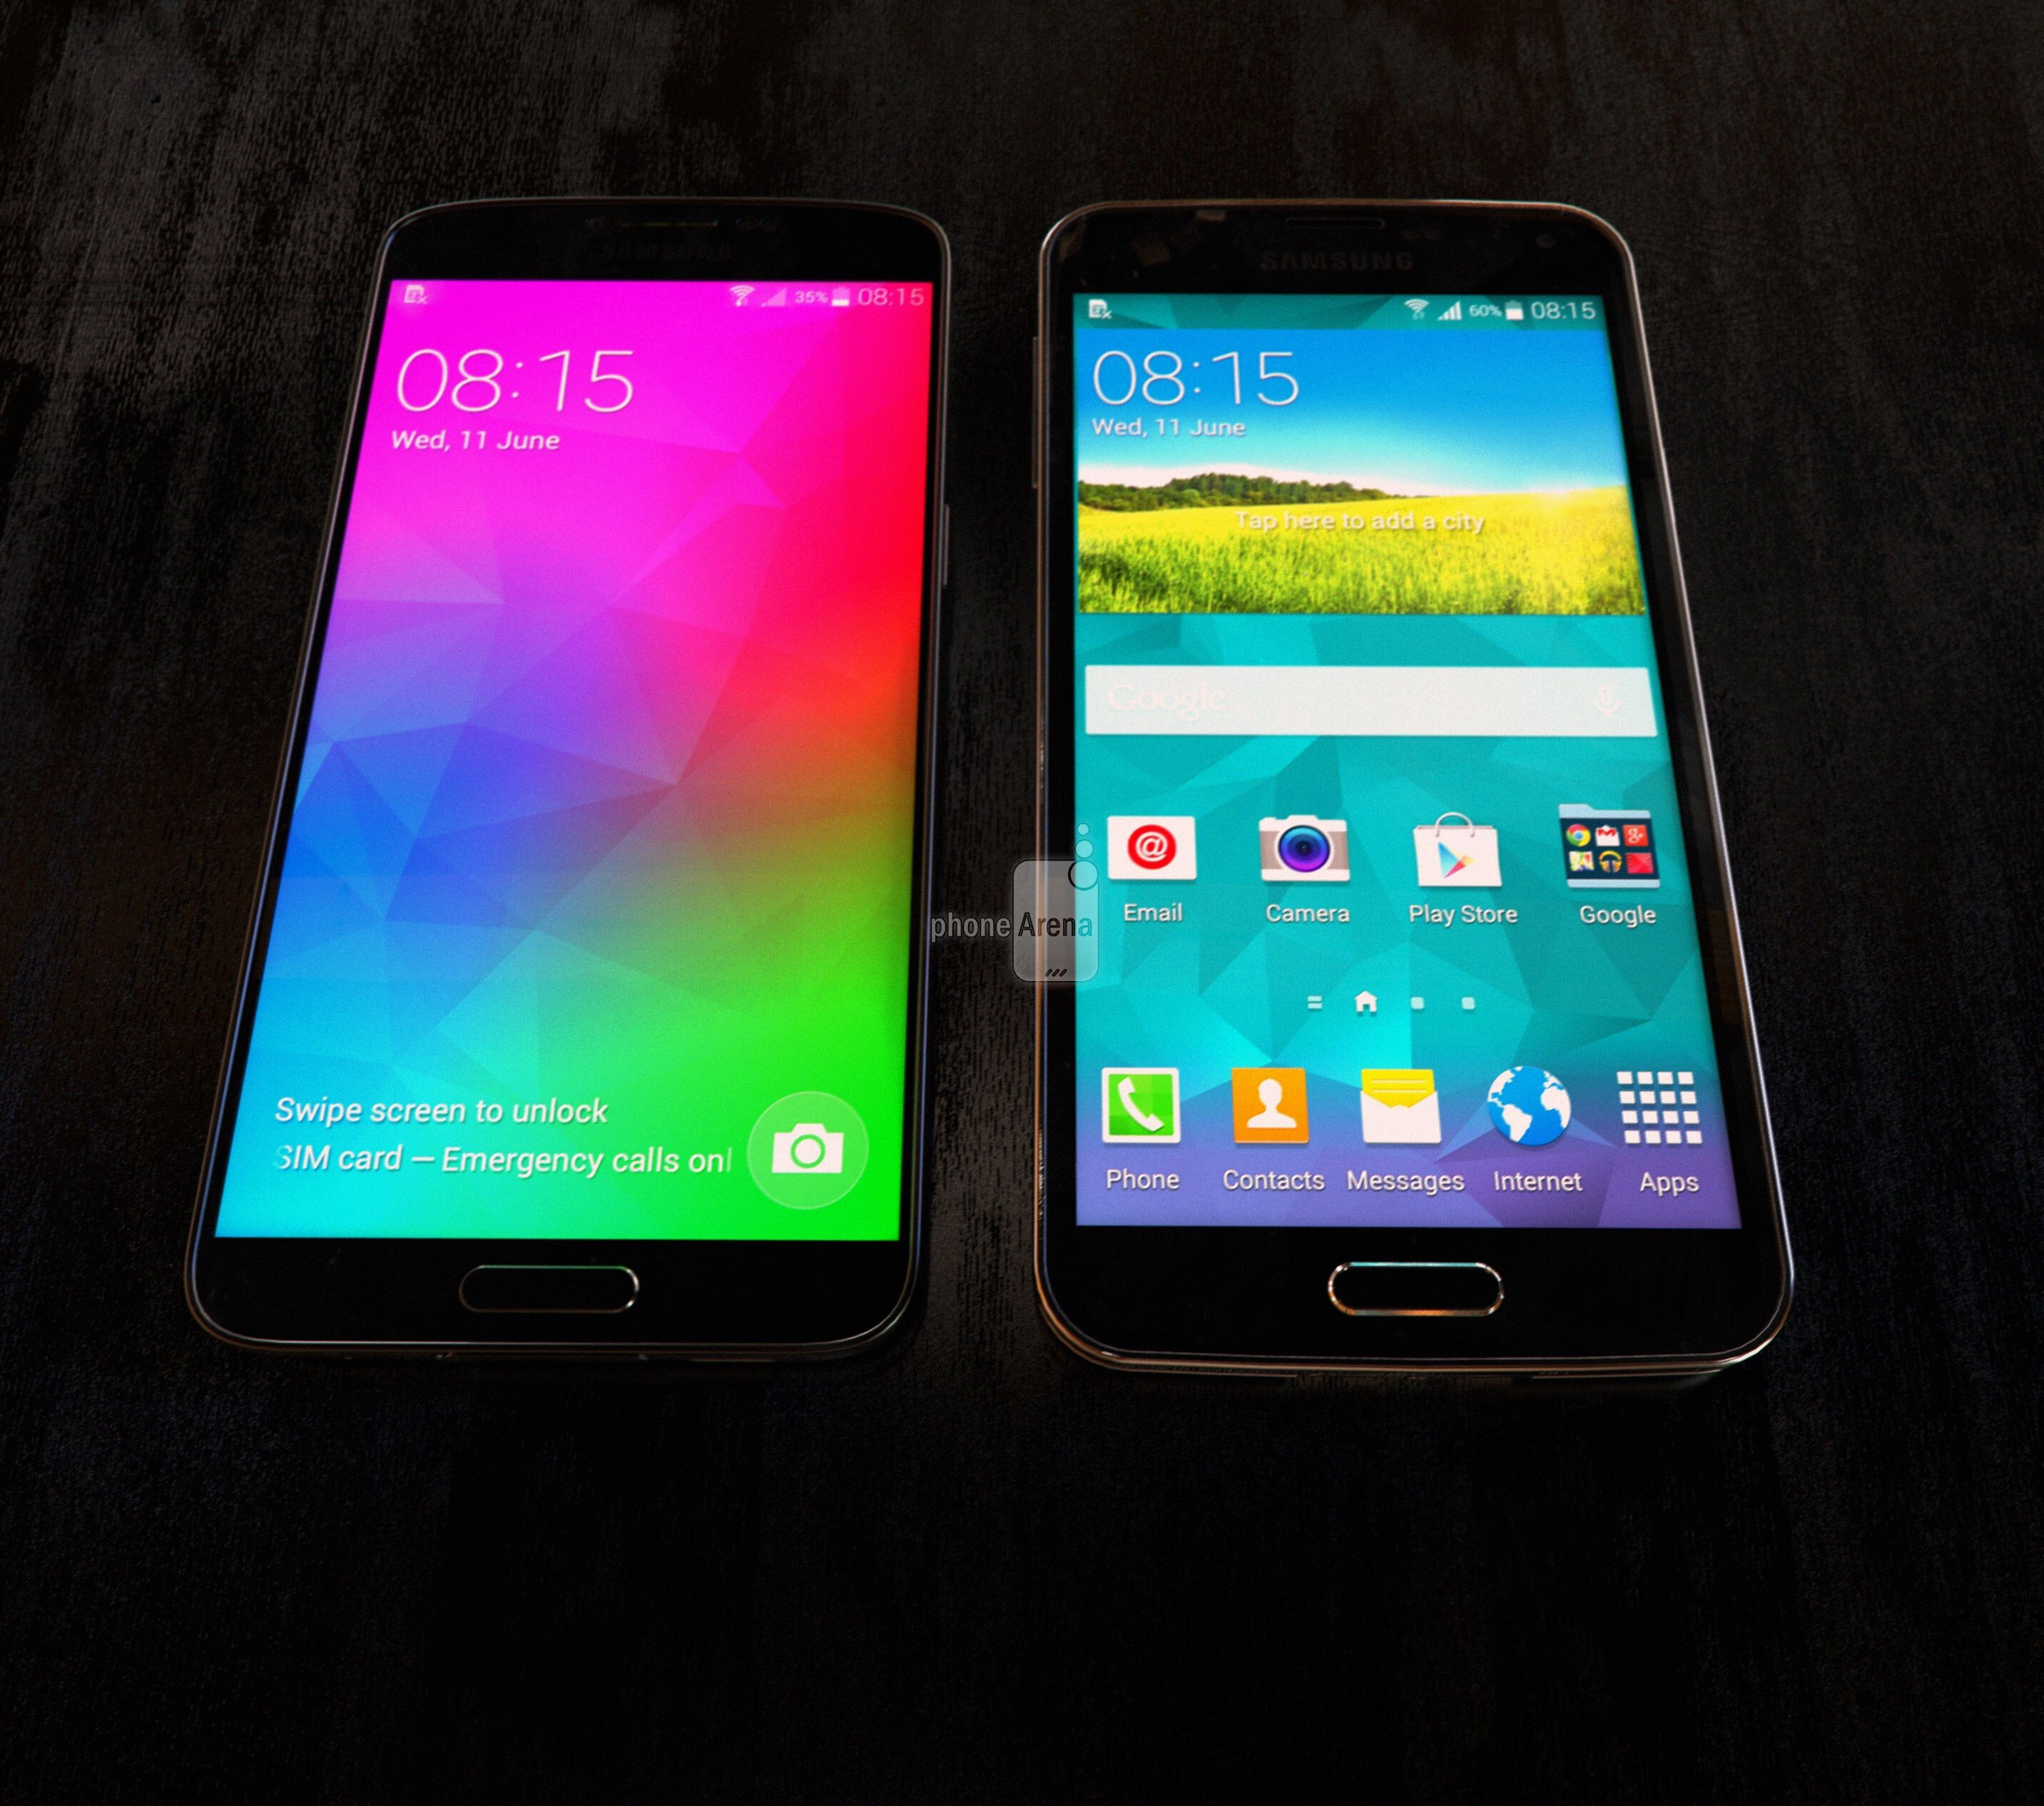 [Rumor] The actual design for the Galaxy S6 might have ...